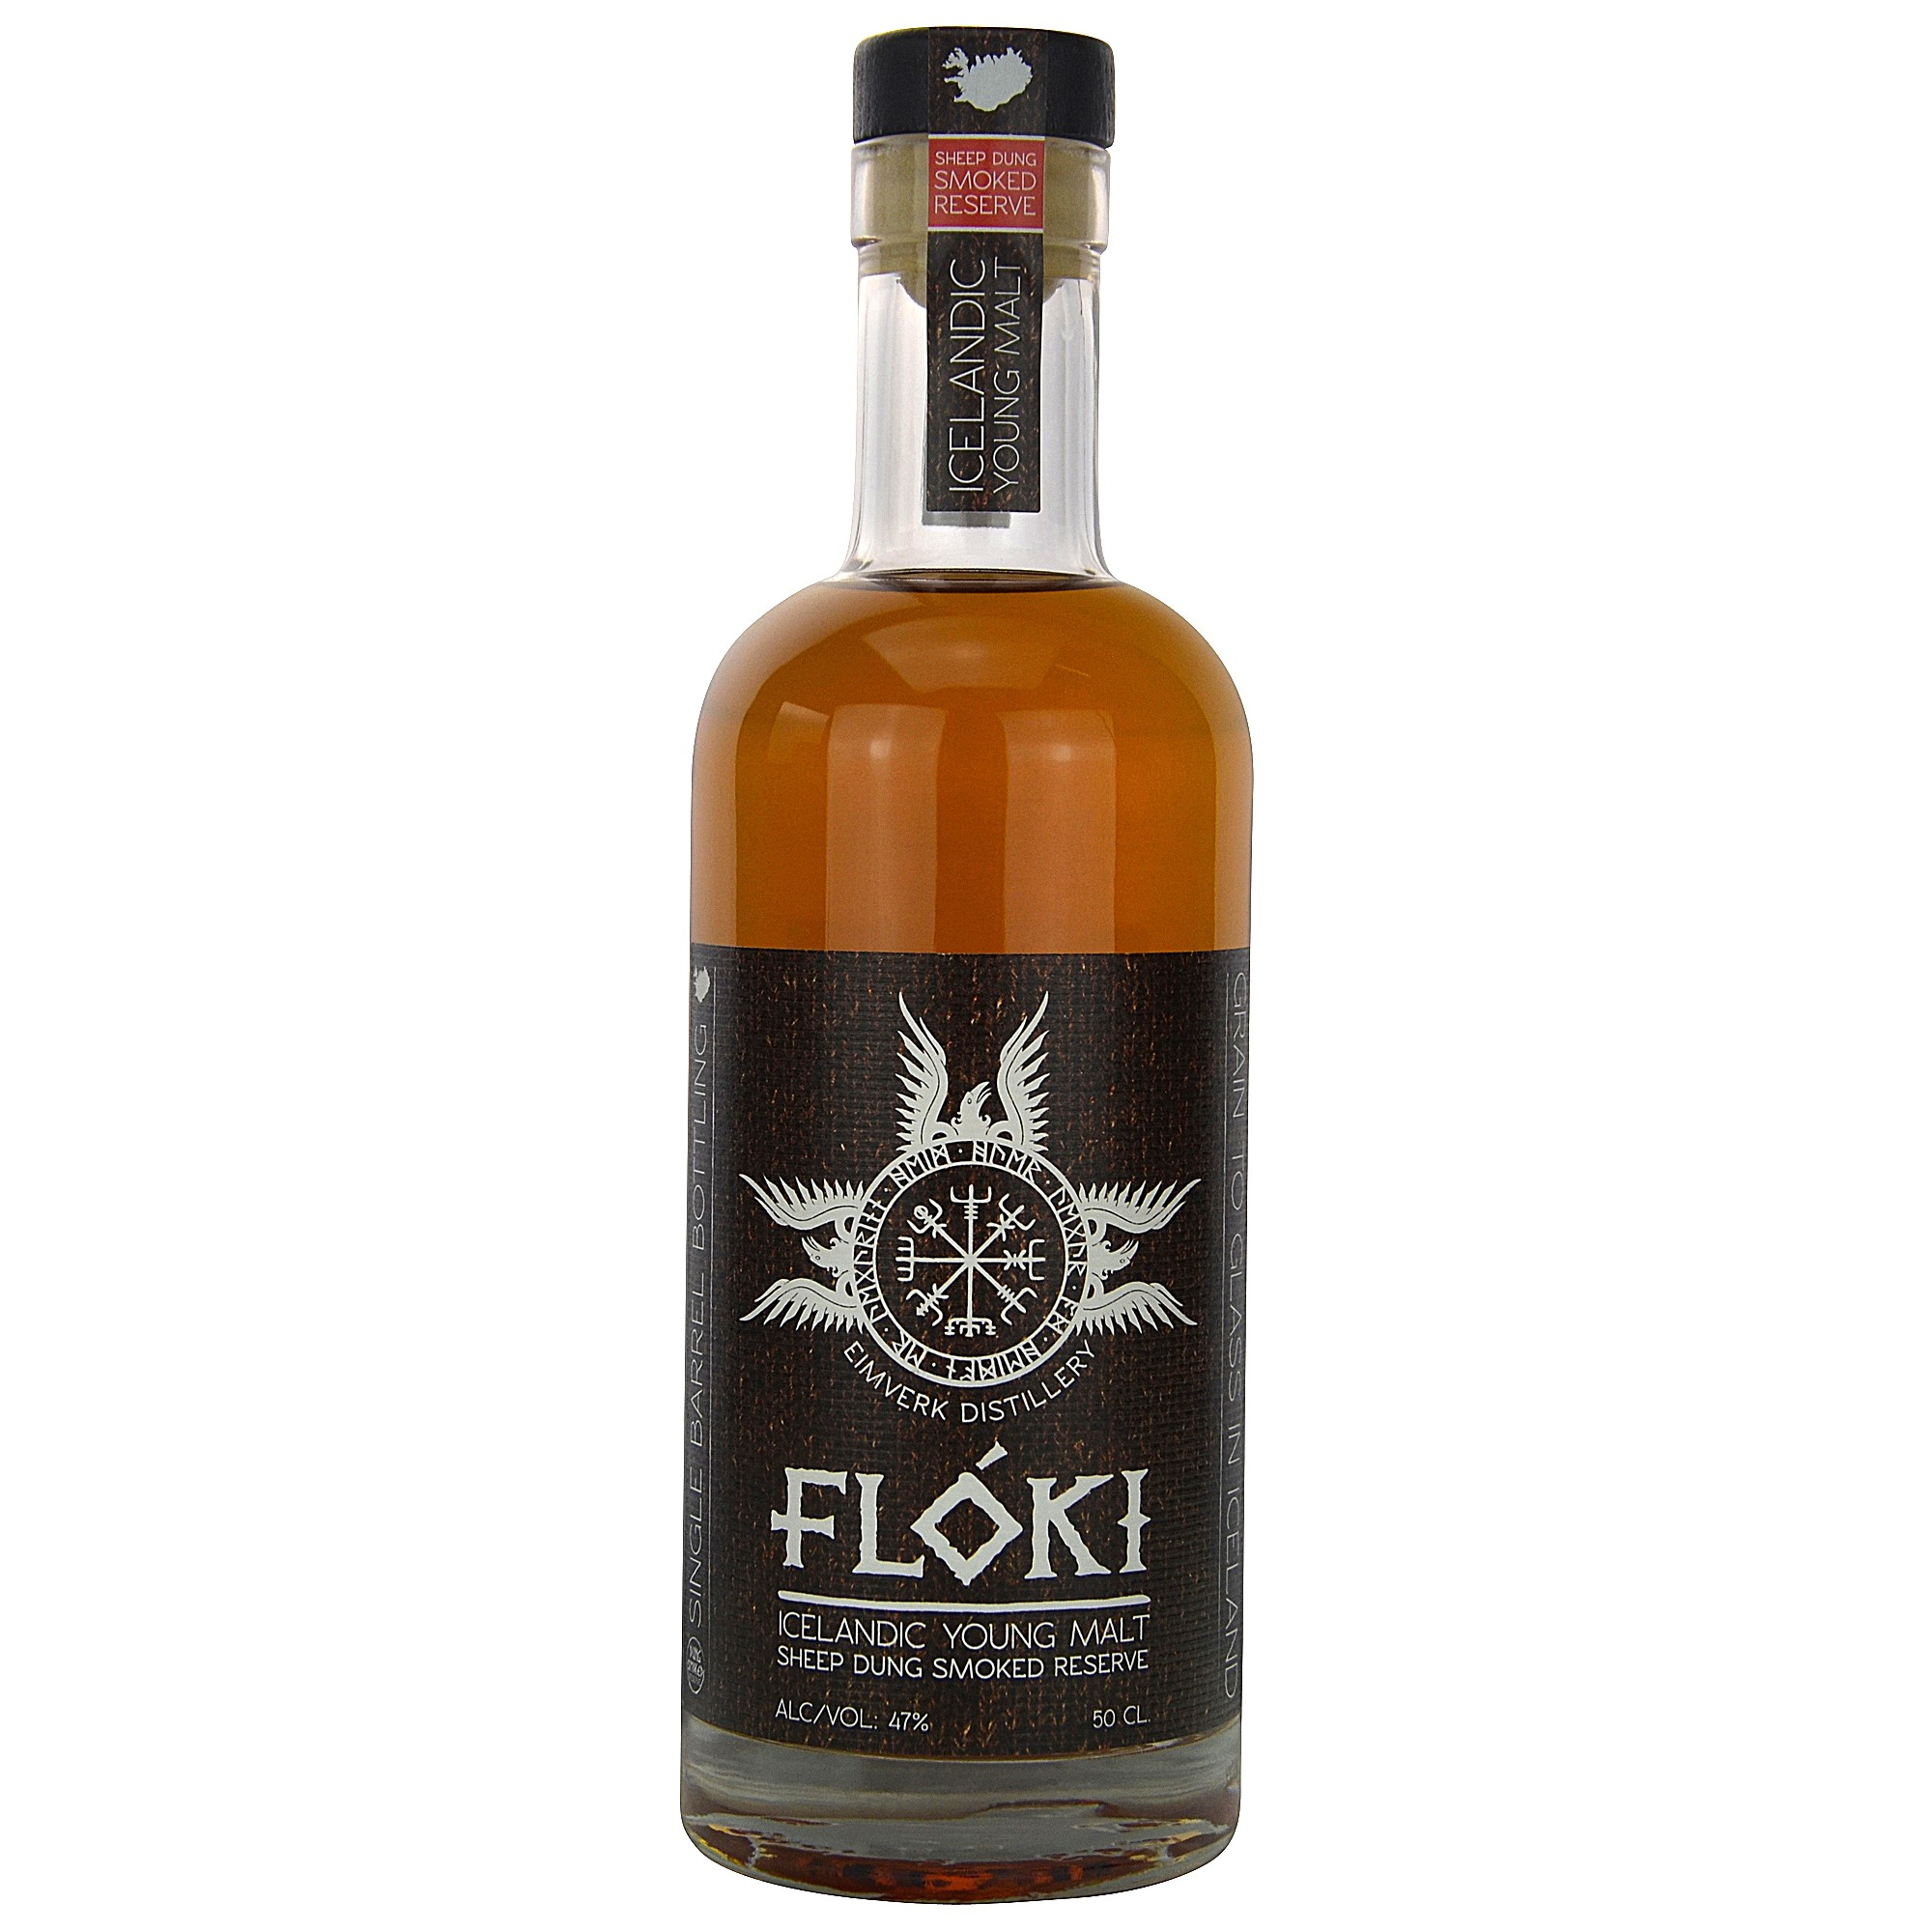 Floki Icelandic Young Malt - Sheep Dung Smoked Reserve - Barrel No. 11 (Island)